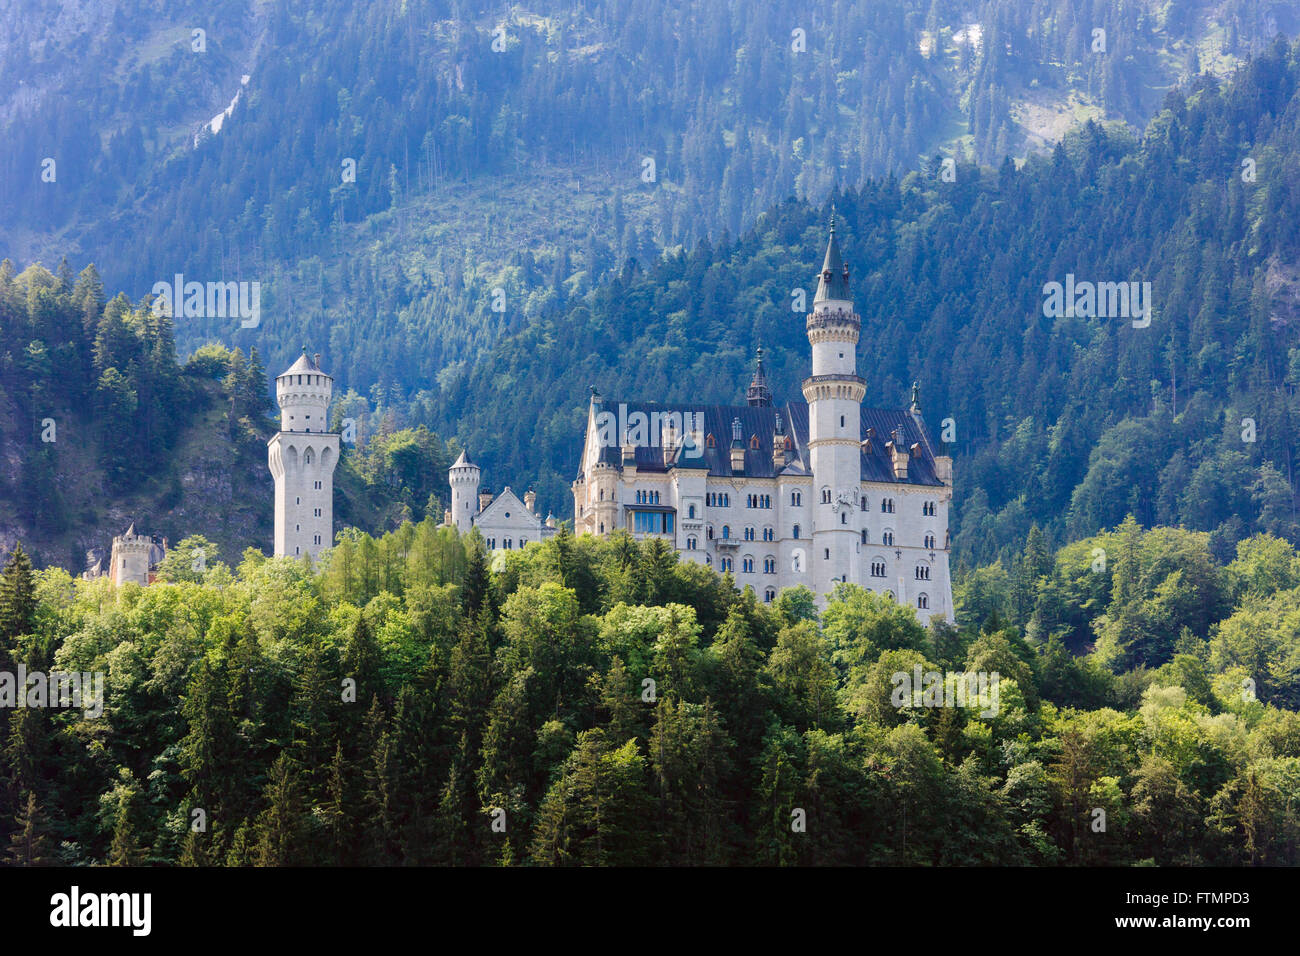 View to Schloss Neuschwanstein castle in forested Bavarian Alps. Schwangau, Allgaeu, Fussen, Bavaria, Germany, Europe. - Stock Image